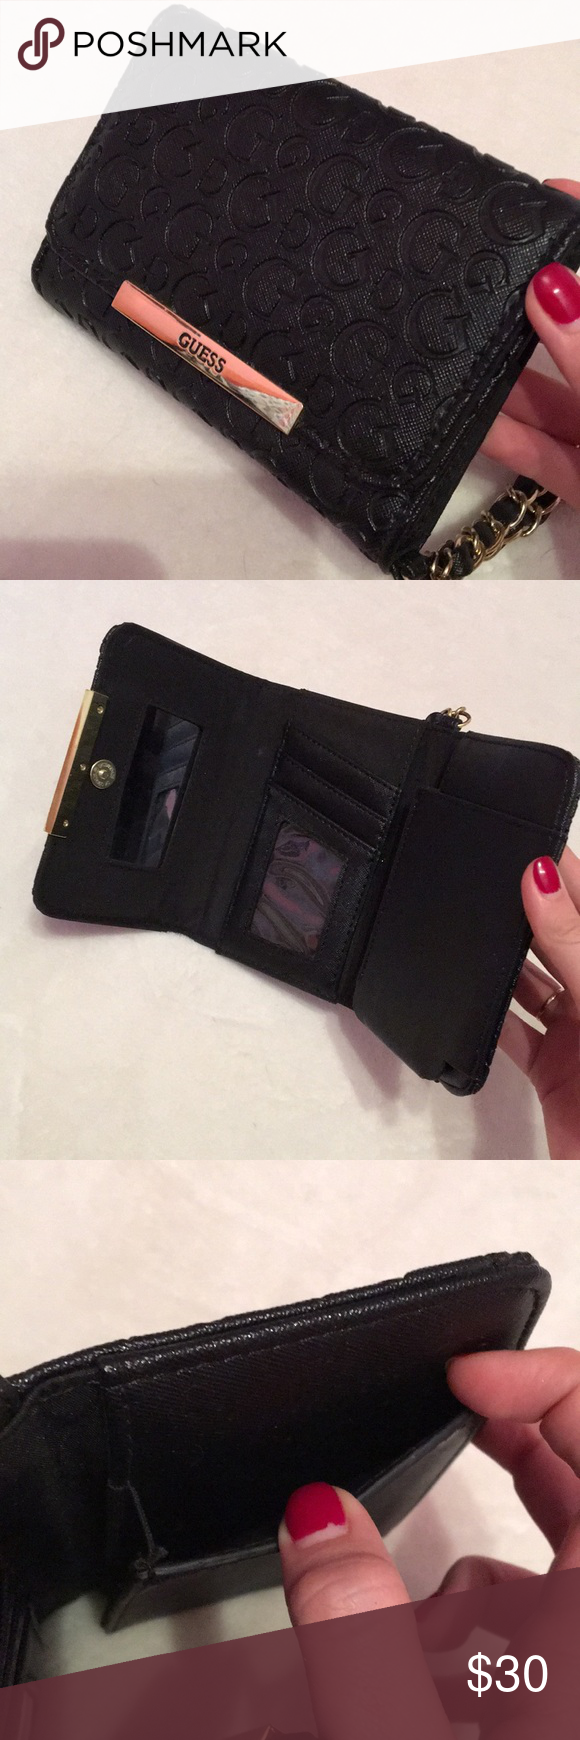 GUESS Wristlet Bag in Black💼 Bag bought directly in the GUESS store!! Has only been used once or twice so it is in perfect condition. The leather and stitching isn't worn out and the gold isn't rusted or marked. :)   💼 NO TRADES   💼 ONLY ACCEPTING OFFERS USING OFFER BUTTON Guess Bags Clutches & Wristlets